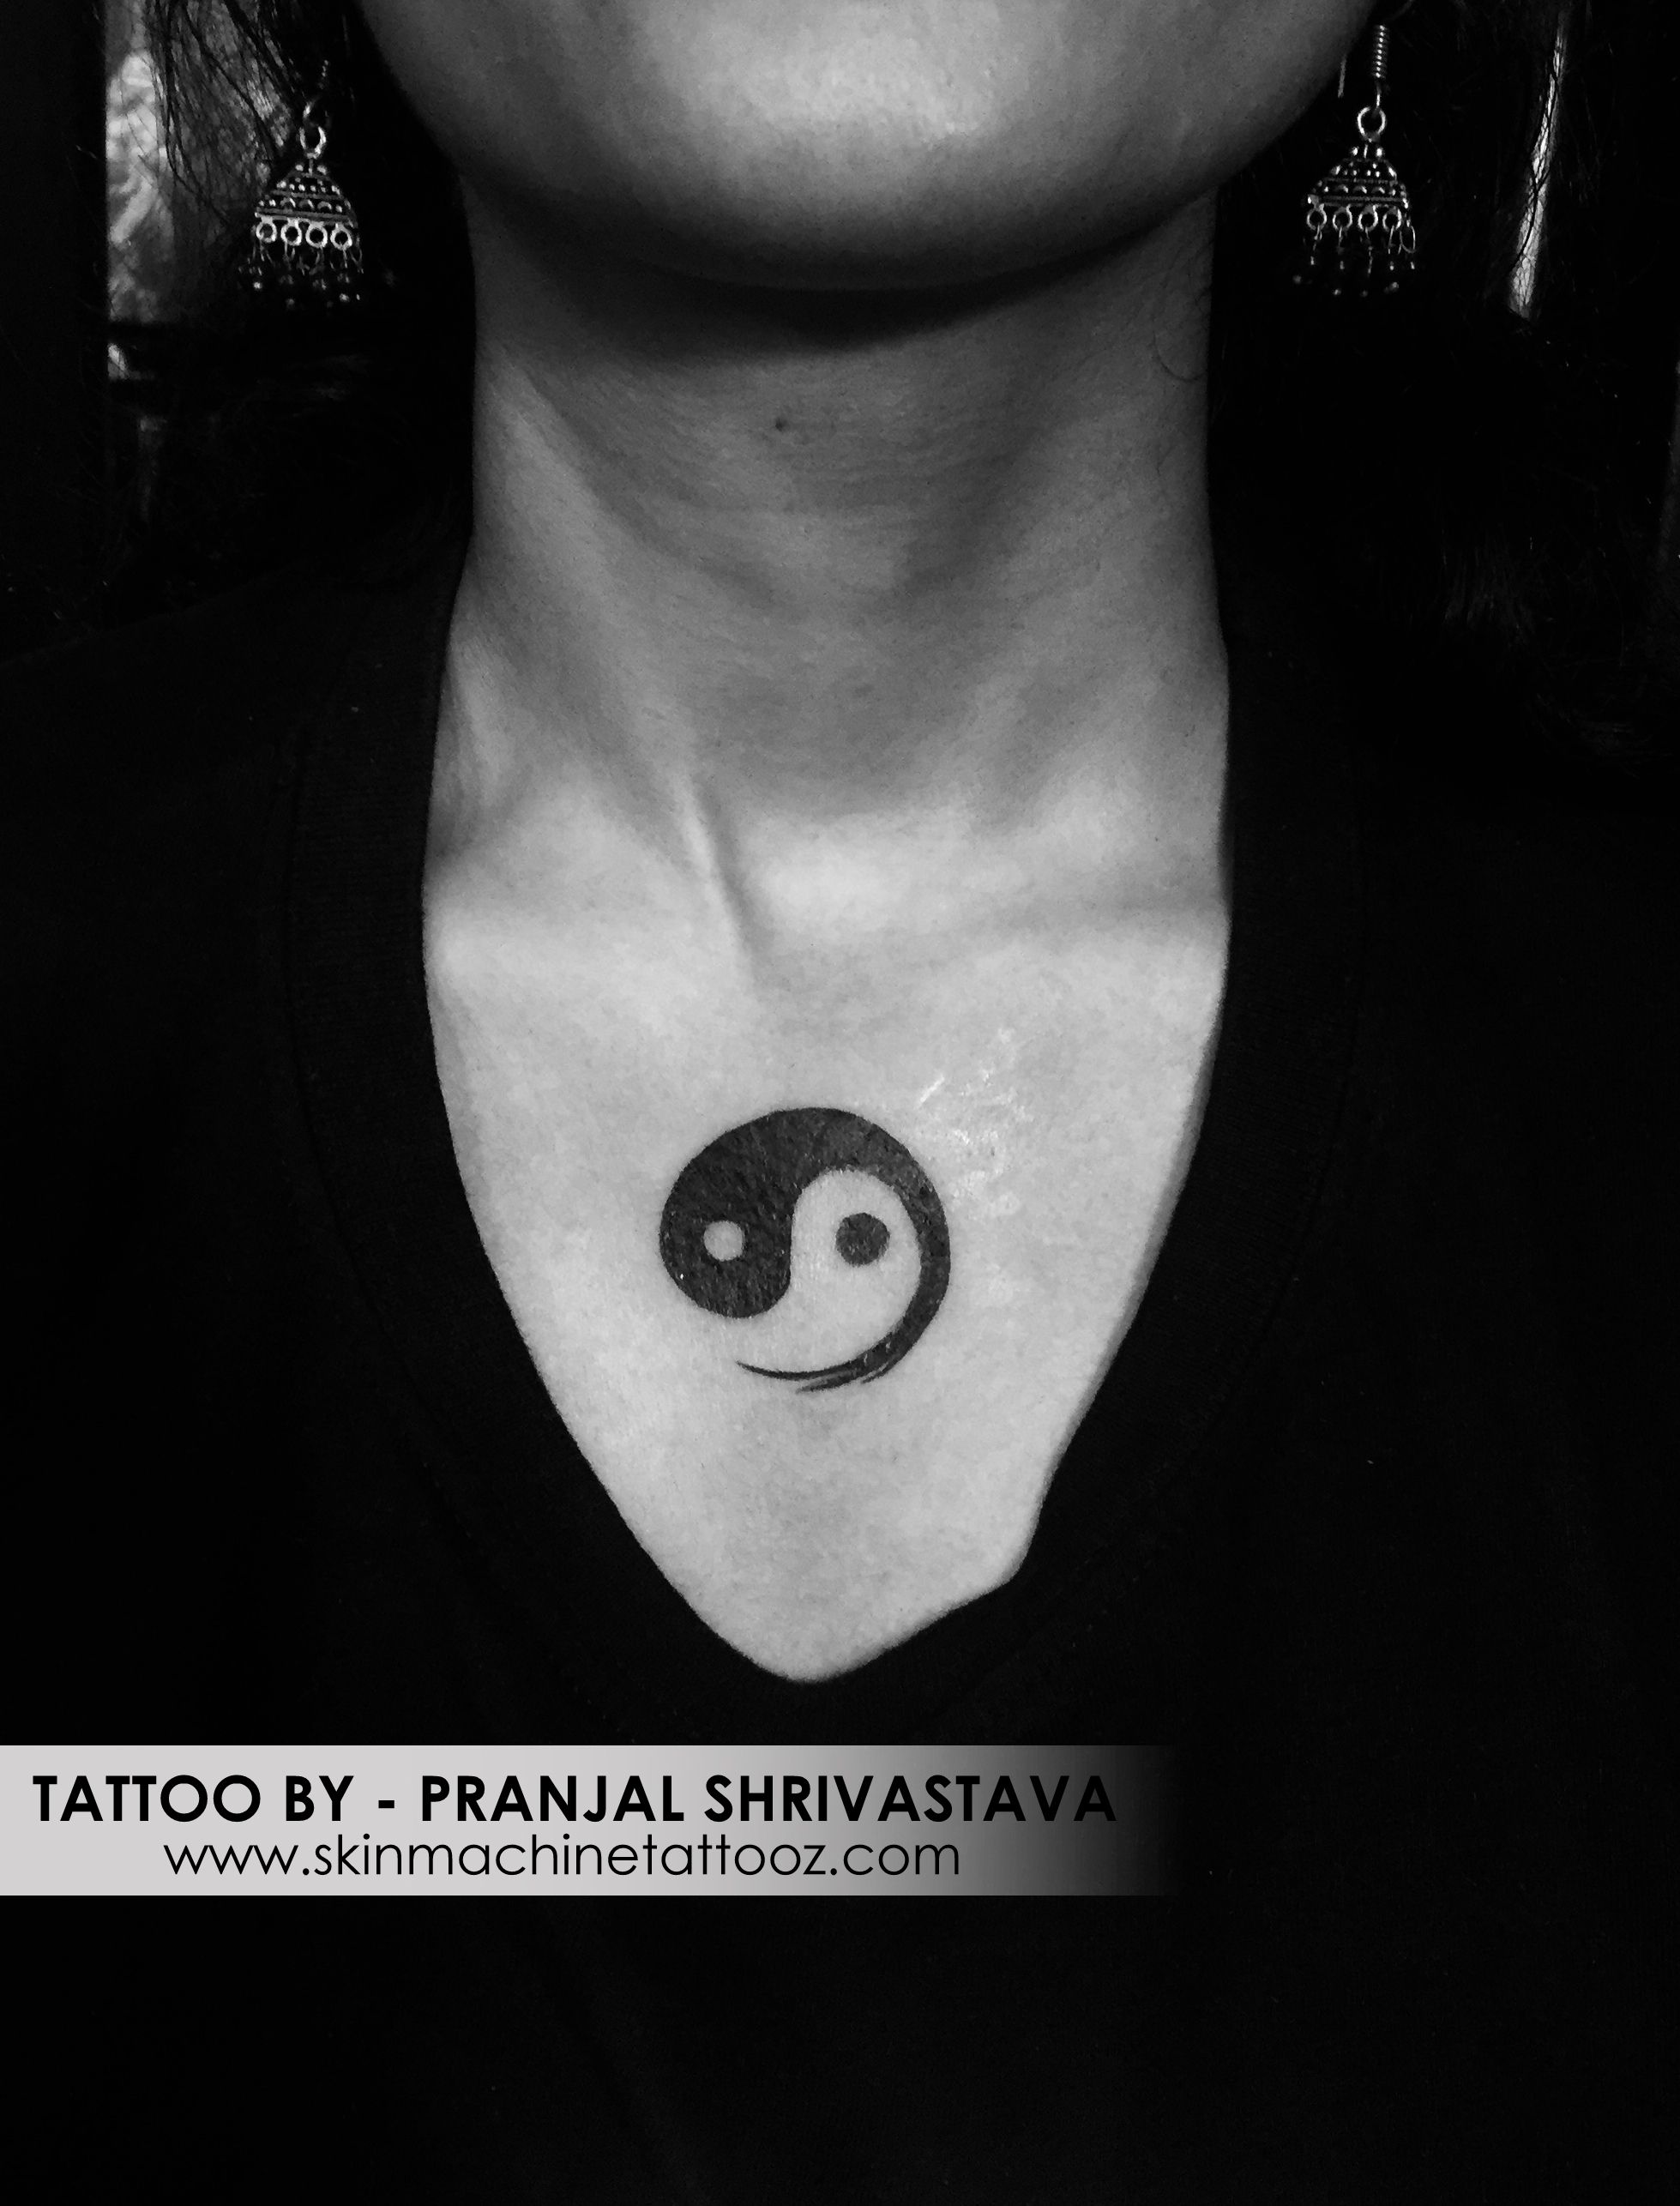 Yin Yang Tattoo Dark Skin: Yin-Yang Tattoo By : Pranjal Shrivastava Skin Machine